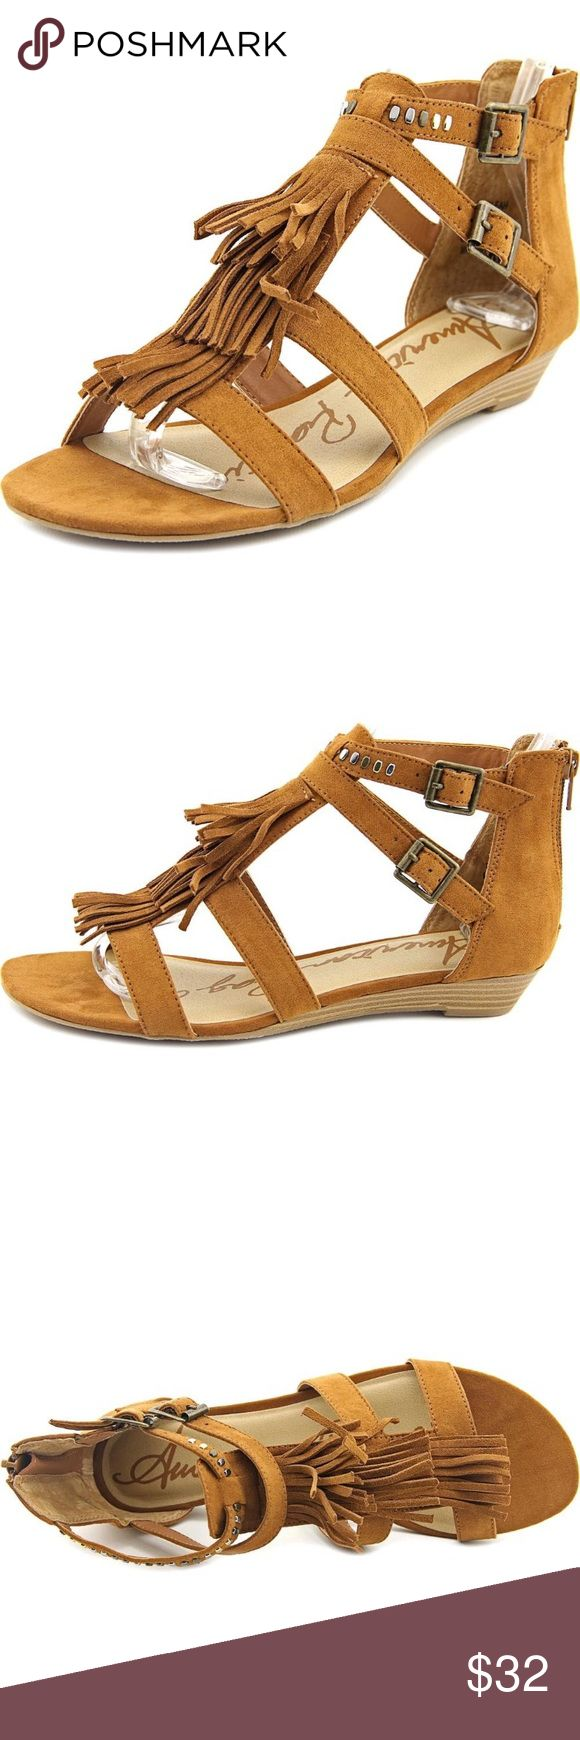 American Rag Leah Women Brown Gladiator Sandal American Rag Women's Leah Open Toe Casual Wedge Gladiator Sandals. 💕 (wow! That's a mouth full!) 💋  ✨Size: 8 Color: Chestnut-Faux Suede Gently used & very comfortable!   Thanks for stopping by! 💜✌🏼 American Rag Shoes Sandals